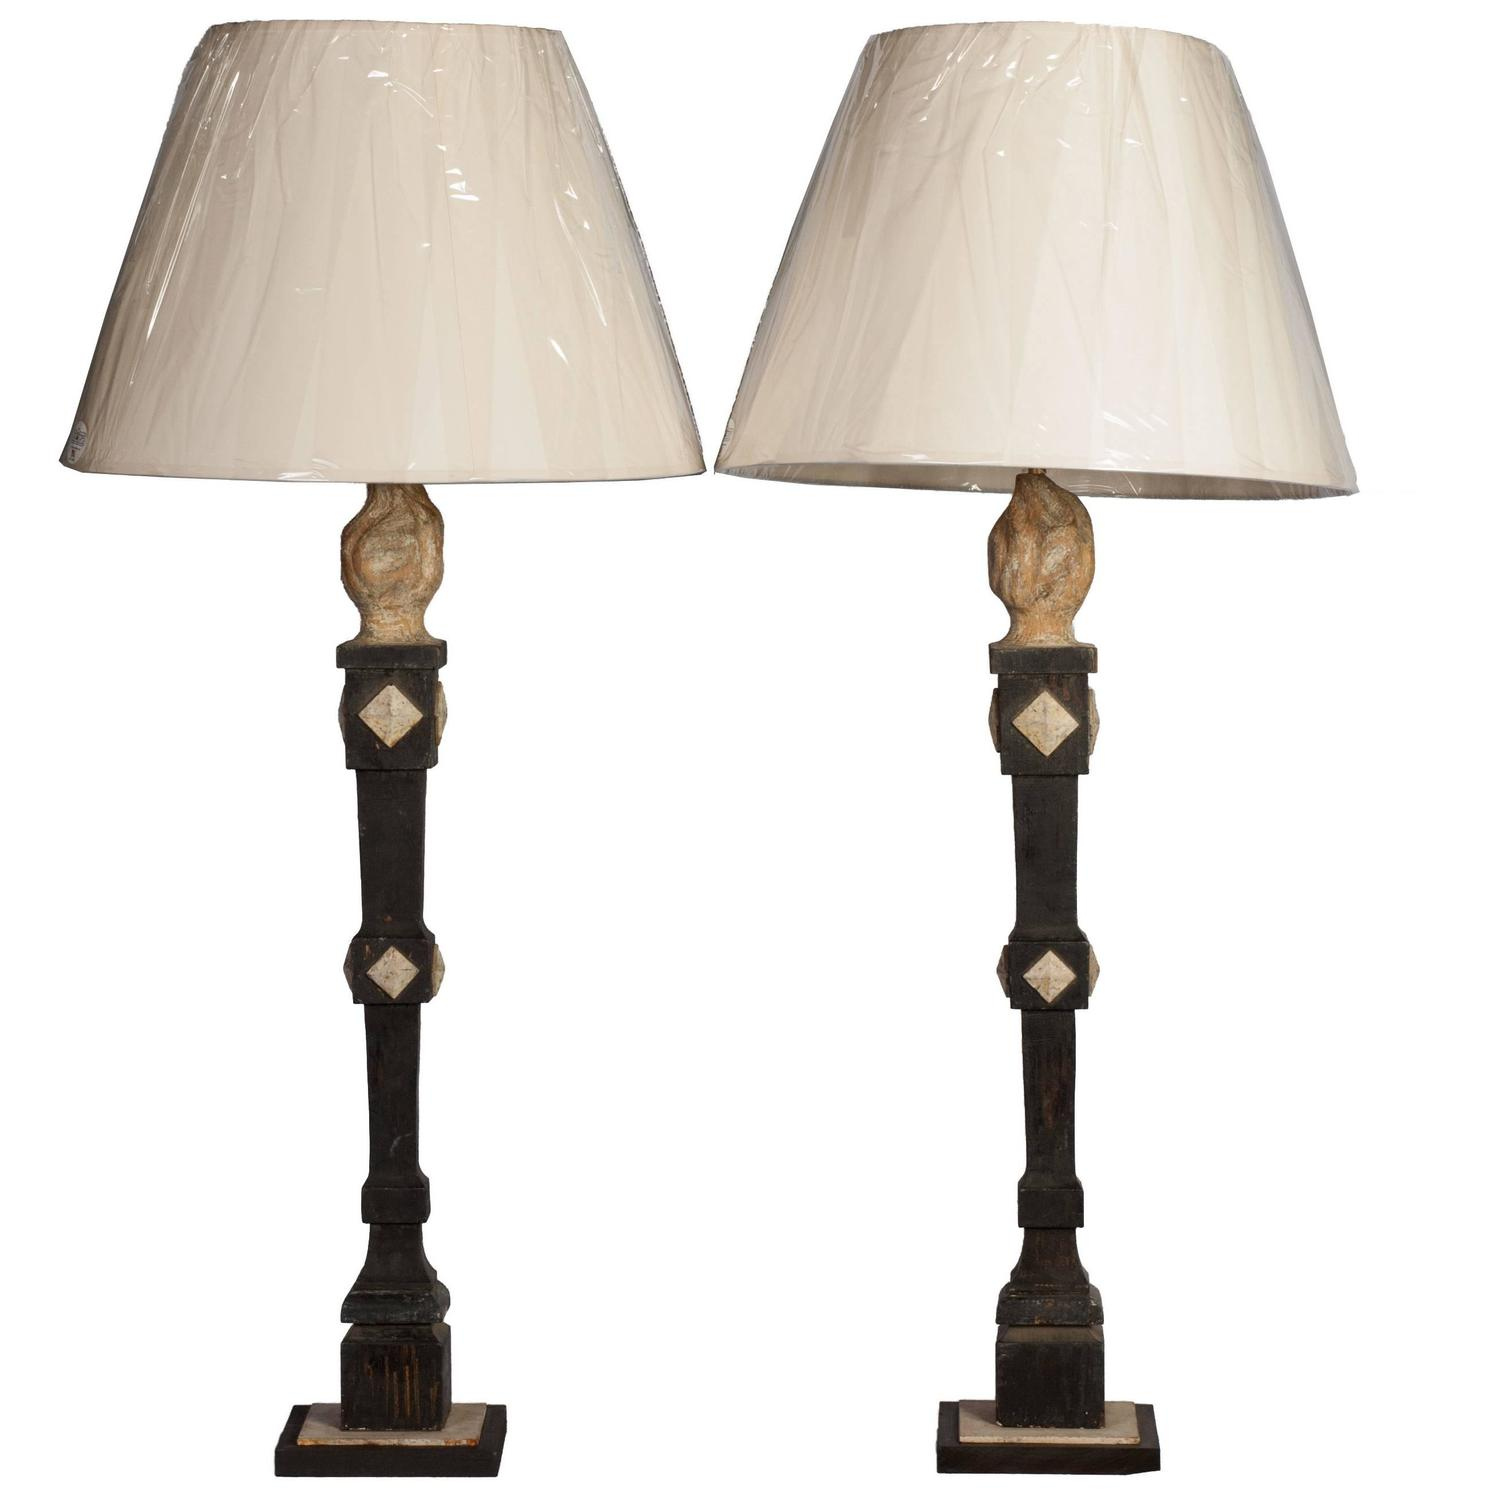 pair of black and white painted carved wood table lamps for sale at 1stdibs. Black Bedroom Furniture Sets. Home Design Ideas